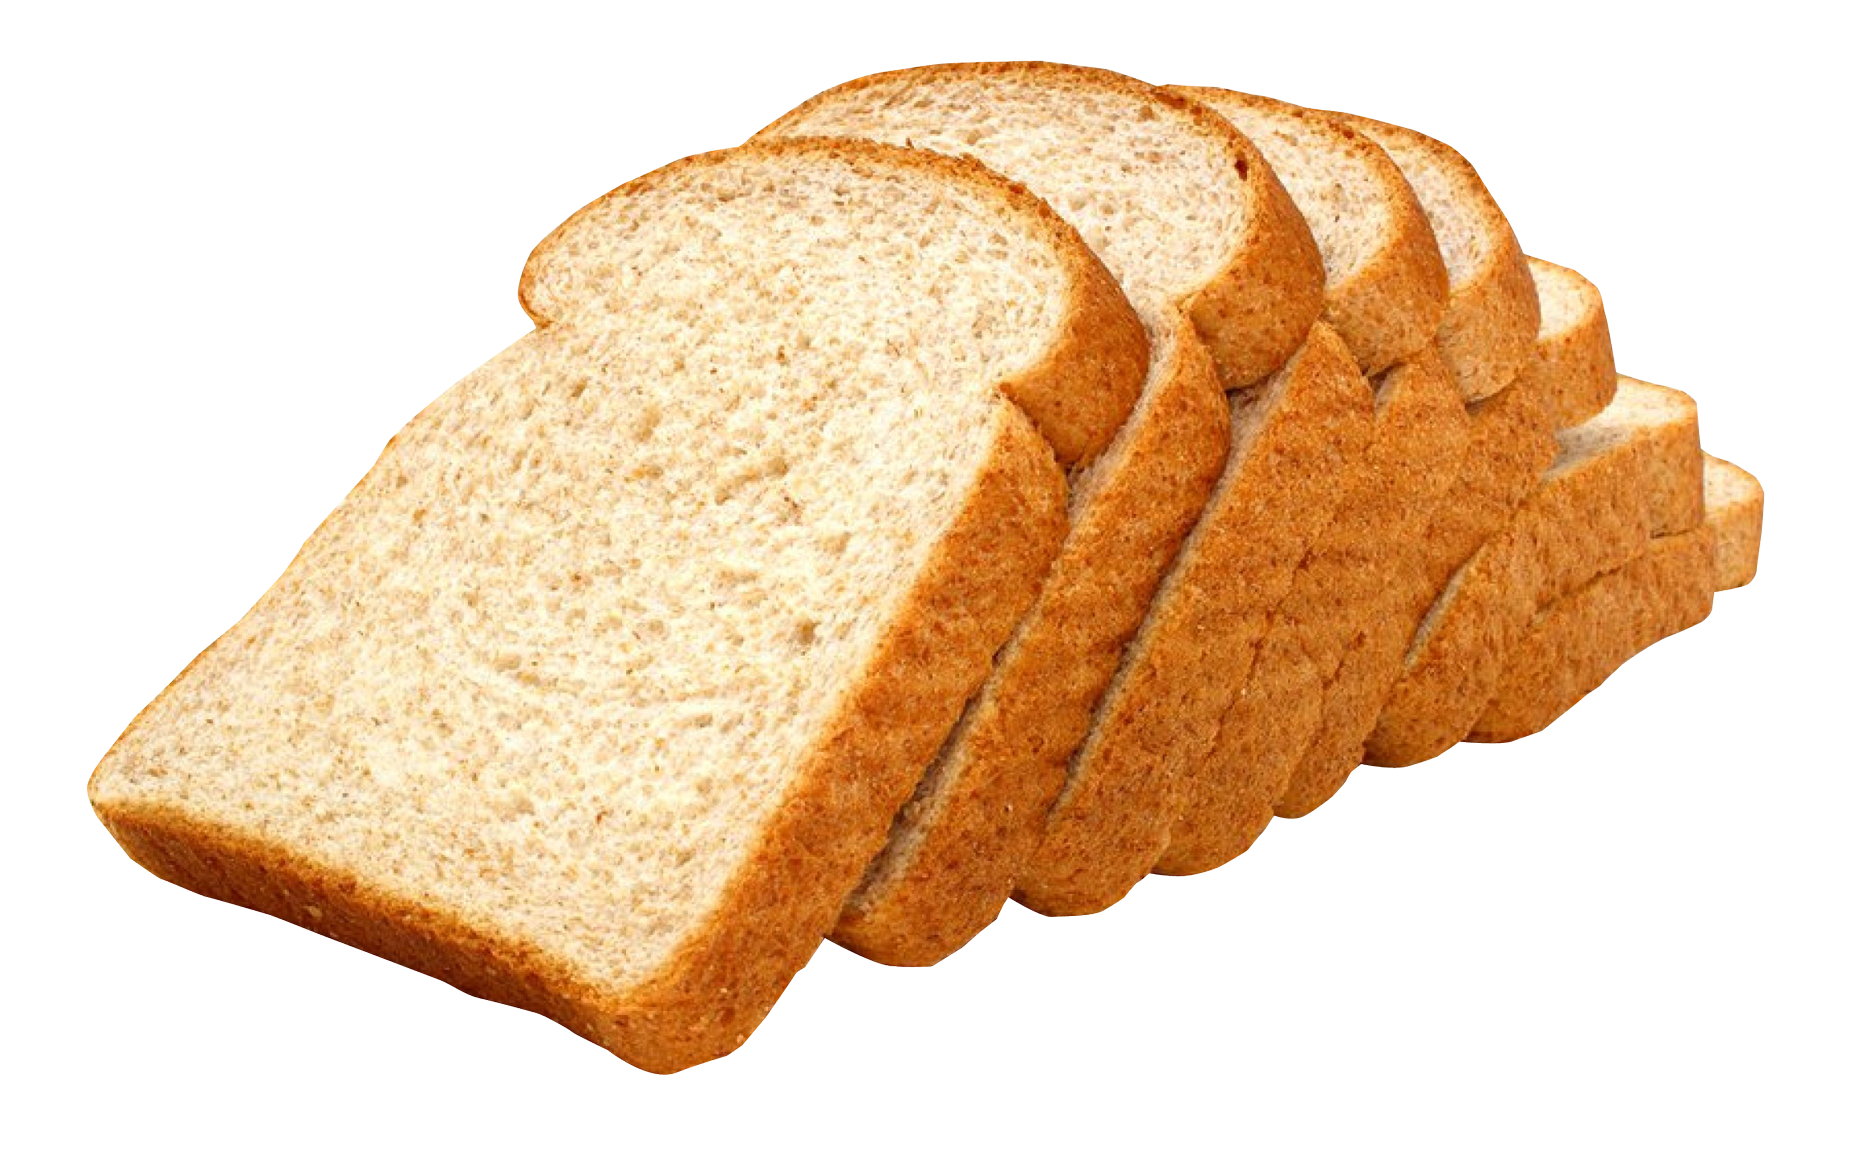 Sliced bread png image. Wheat clipart loaf